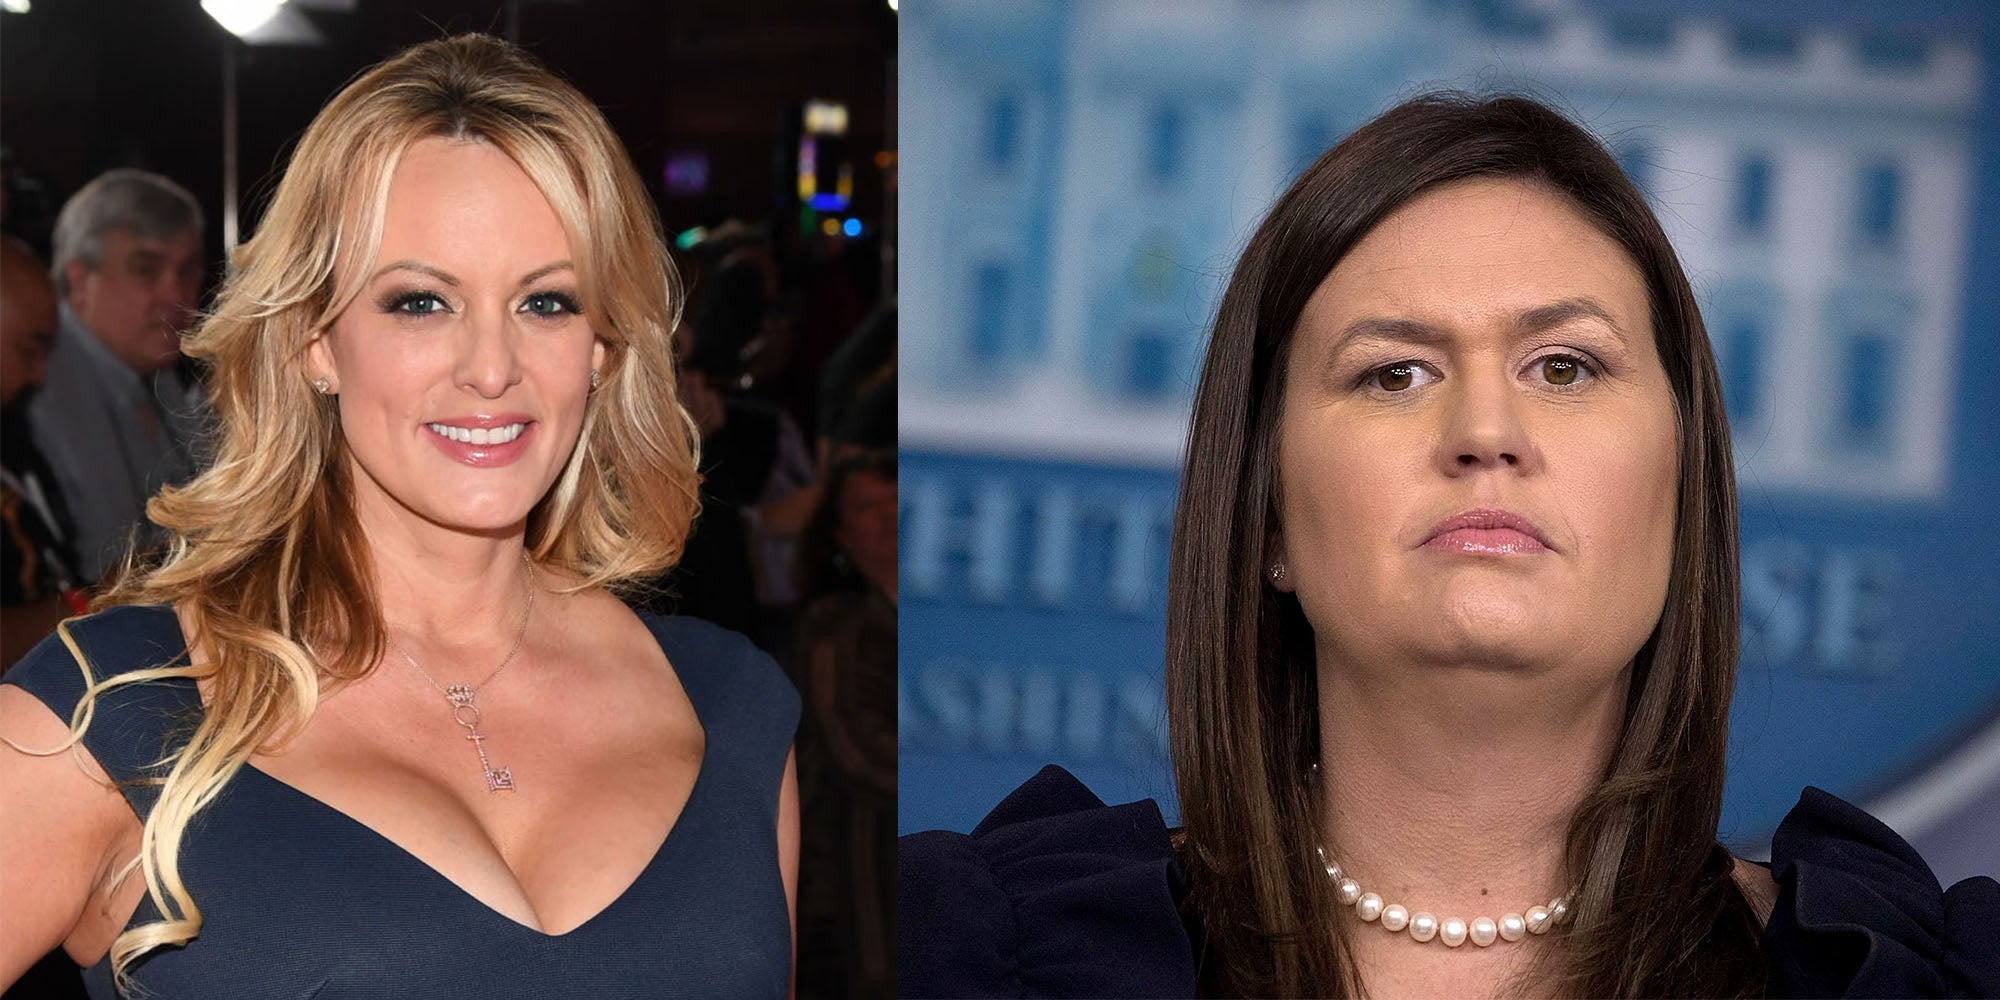 Stormy Daniels had the best response to Sarah Sanders leaving the White House